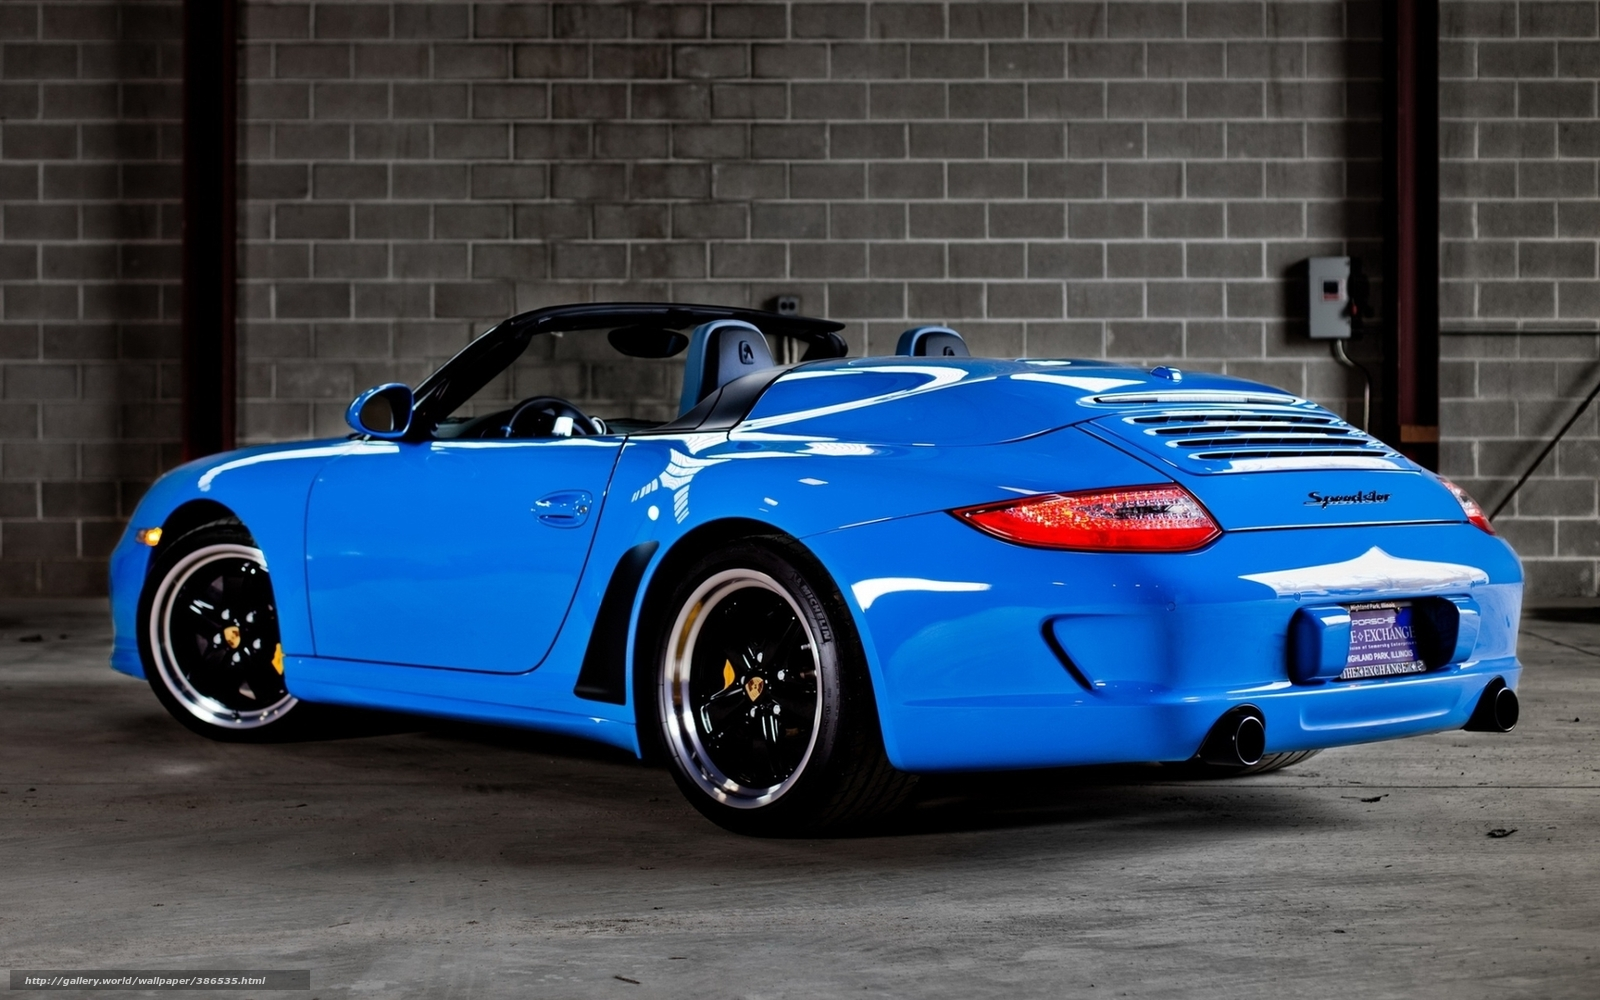 Download Wallpaper Porsche Speedster Supercar Back View